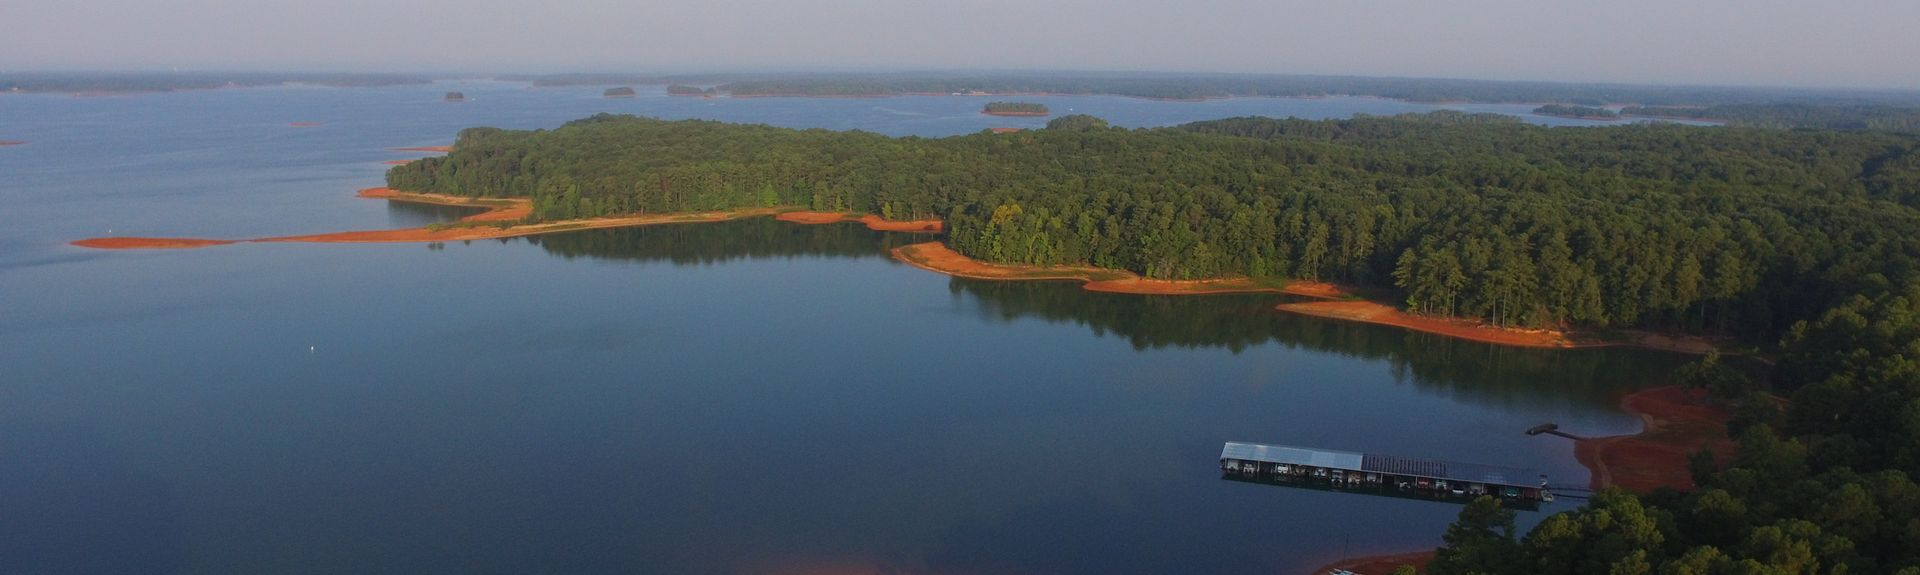 Reed Creek, Hartwell, Geórgia, Estados Unidos